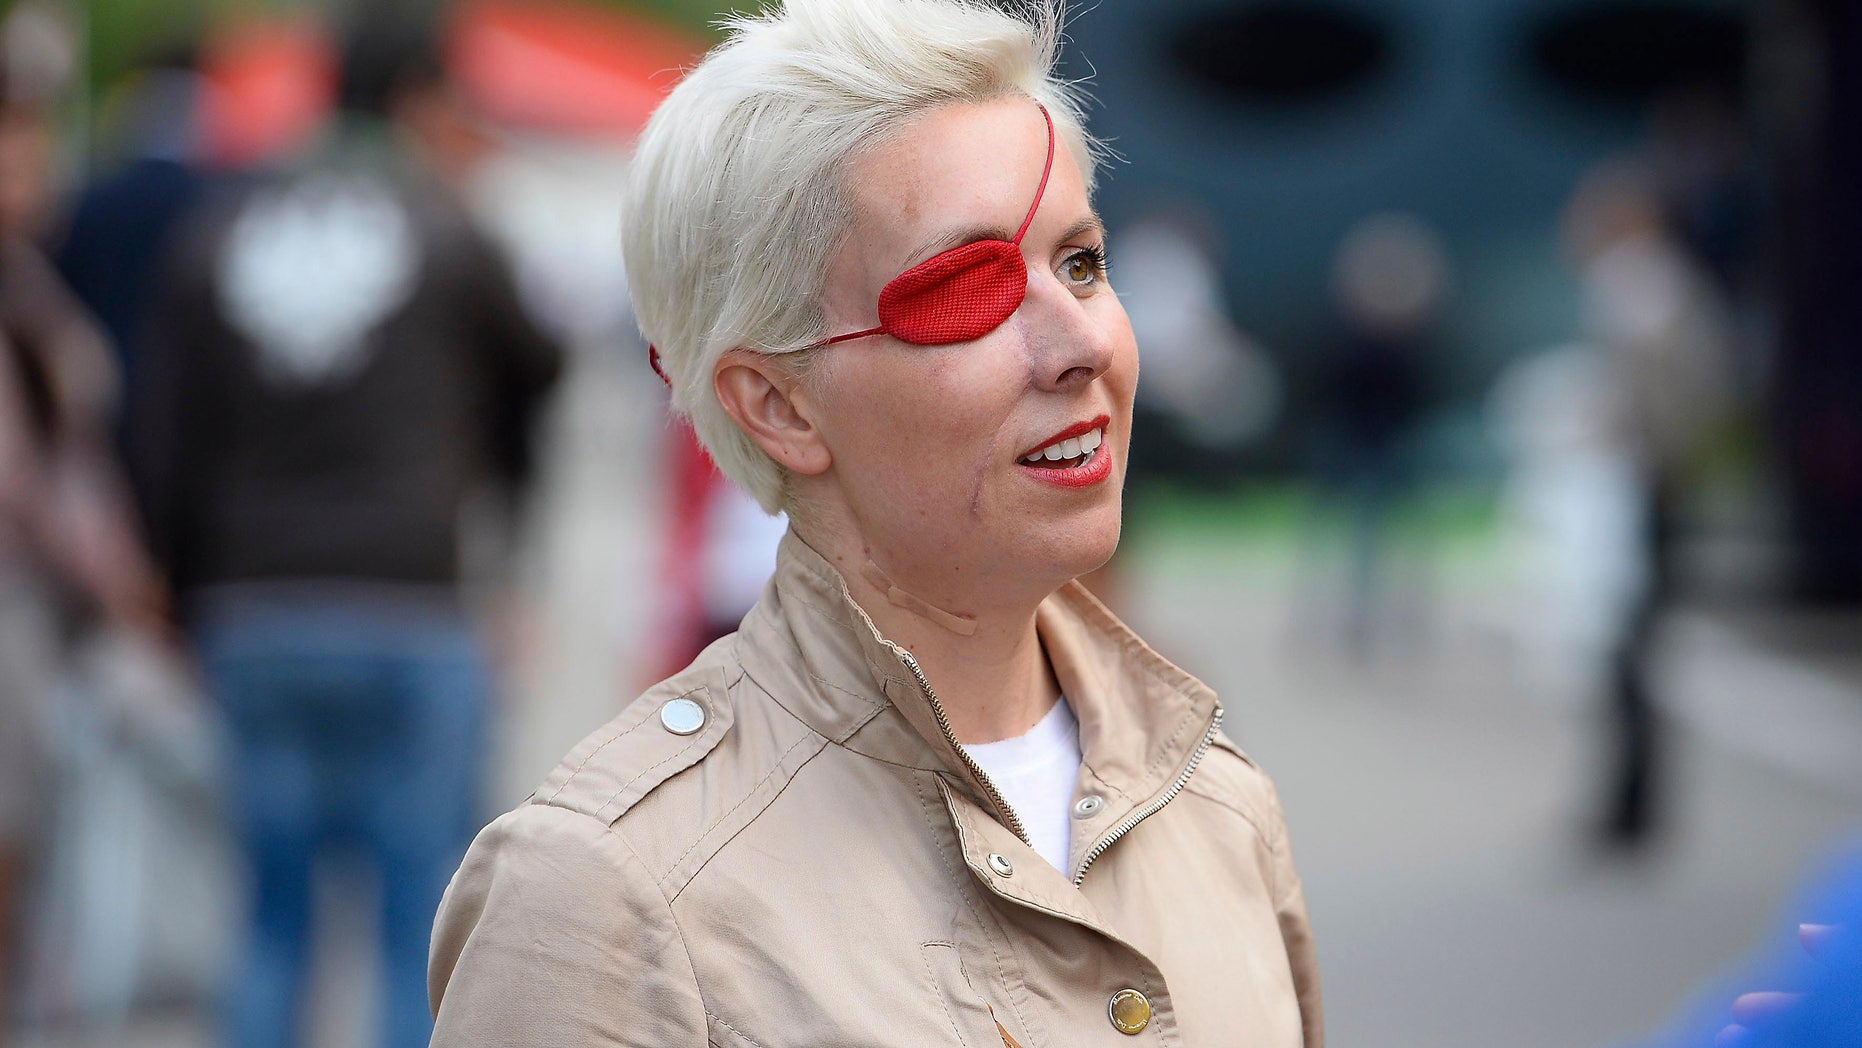 Spanish former F1 driver Maria De Villota is seen in the paddock after the second free practice session at the Catalunya racetrack in Montmelo, near Barcelona, Spain, Friday, May 10, 2013. Maria de Villota, a Spaniard who drove for Marussia, was the series' last full-time female driver since Italy's Giovanna Amati was with the Brabham team in 1992. But de Villota's career ended prematurely in July when she crashed into a team support vehicle in her first test of the team's MR-01 car. She lost her right eye in the accident and has not returned. (AP Photo)